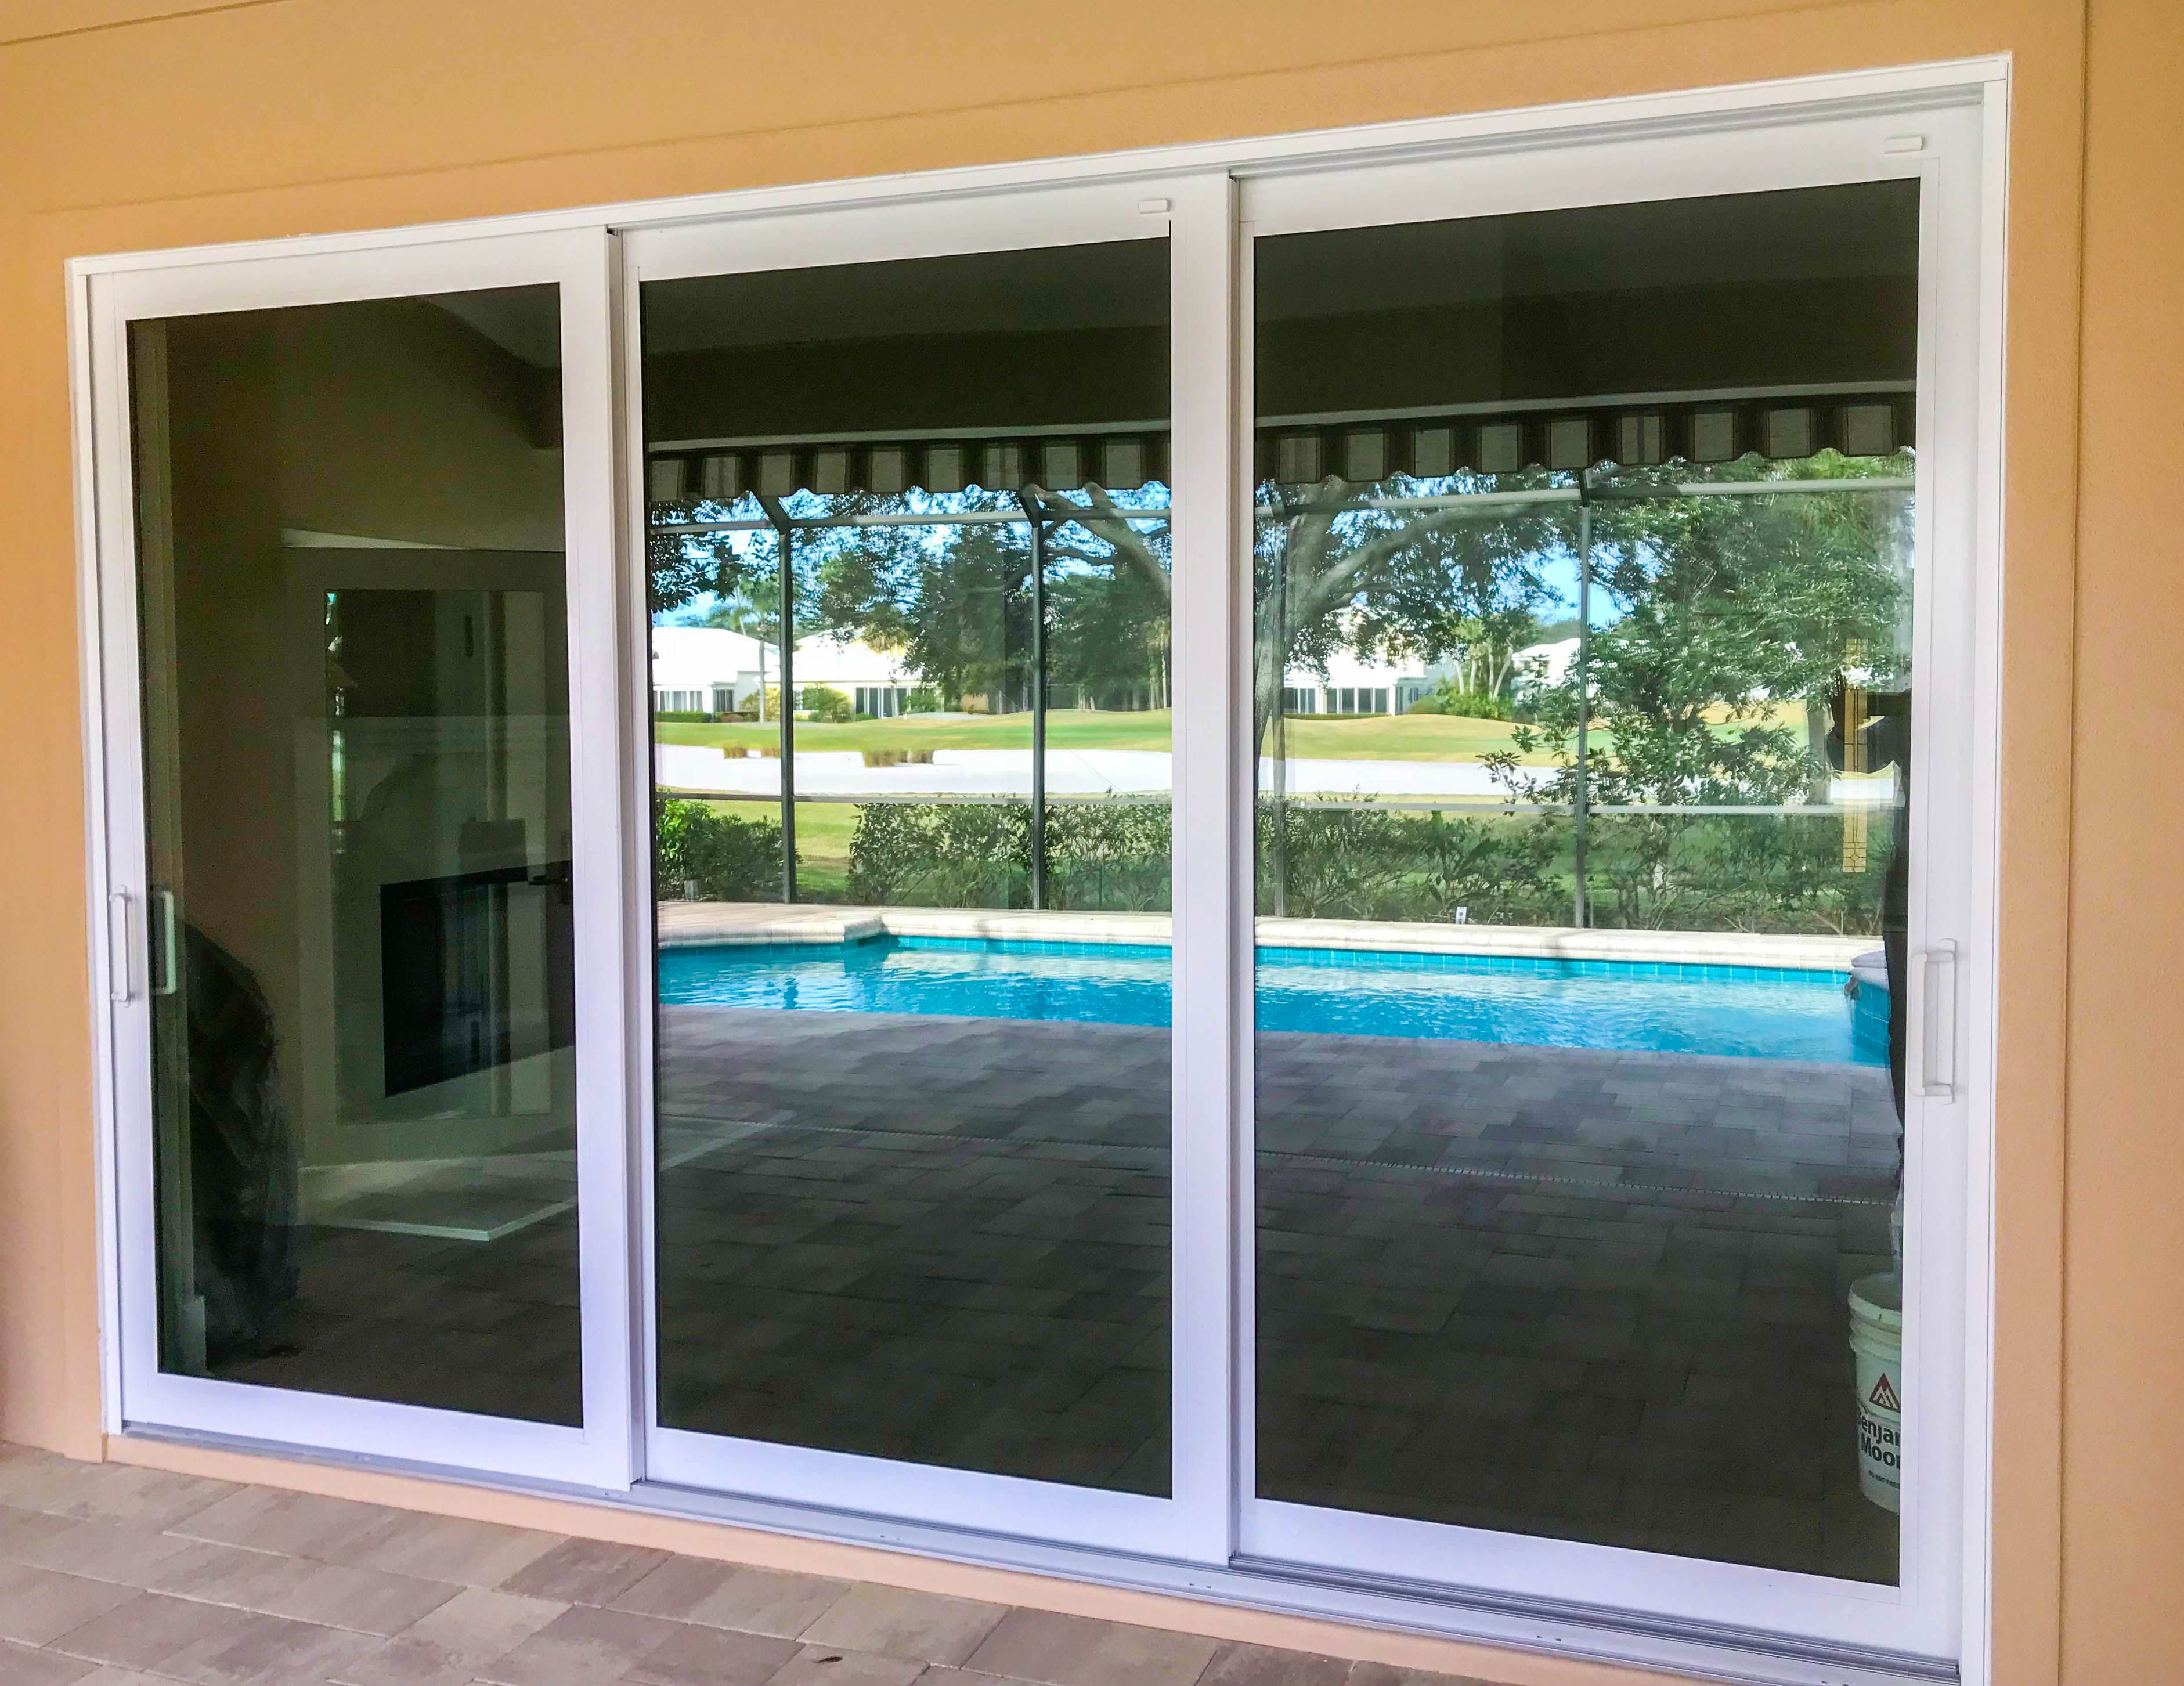 Pgt Wingaurd Sliding Glass Doors Installed By Mullet S Aluminum Products Inc Sliding Glass Door Aluminium Sliding Doors Sliding Door Design